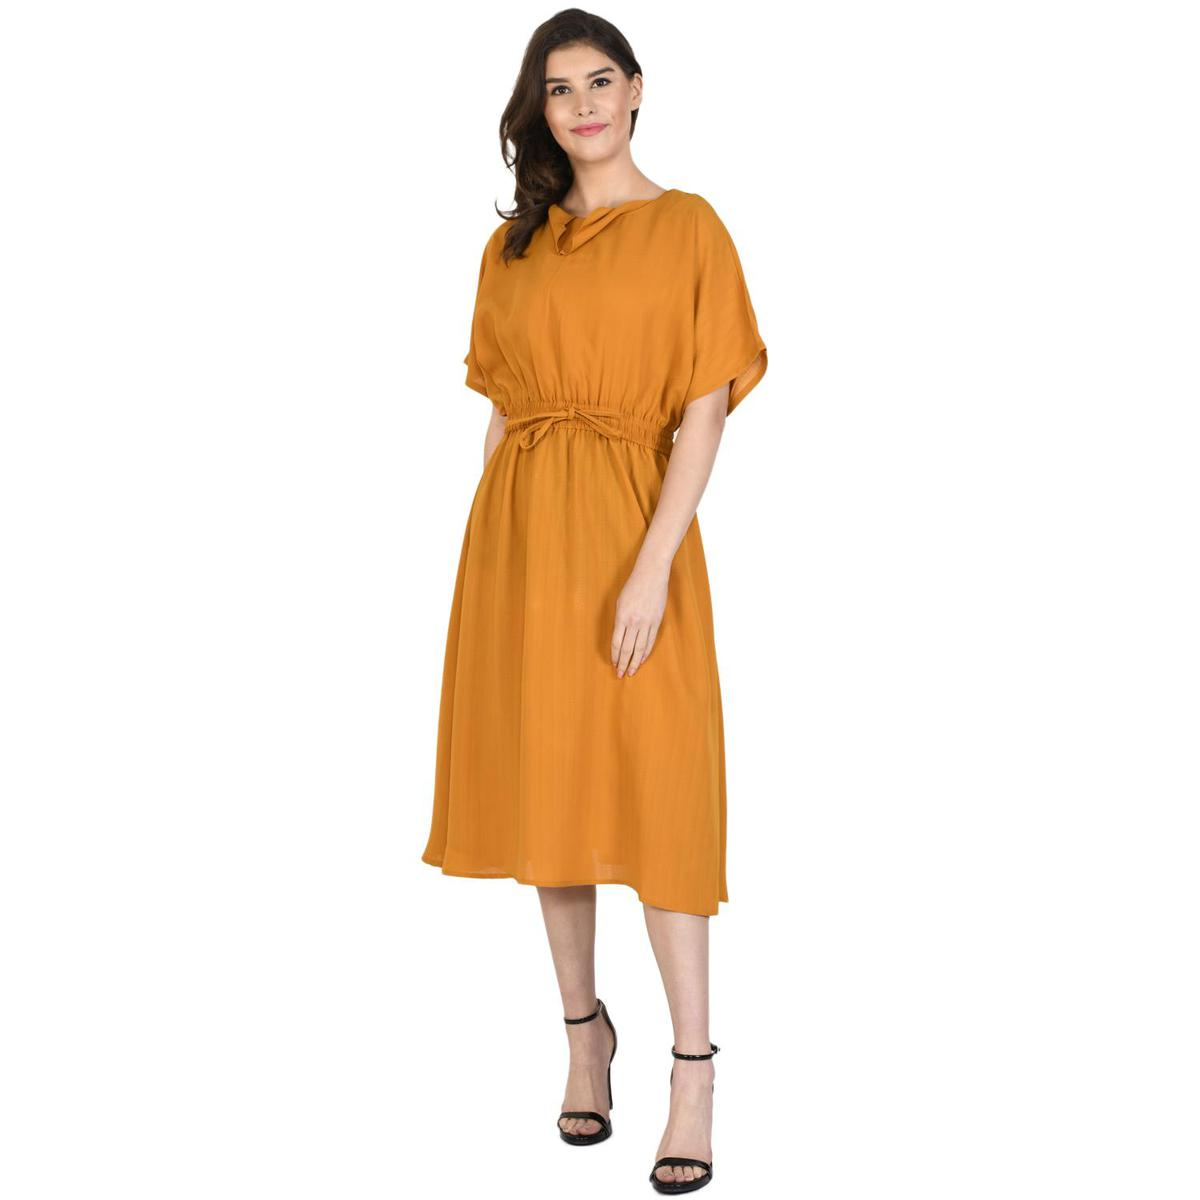 Henry And Zoe - Mustard Colored Polyester Dress